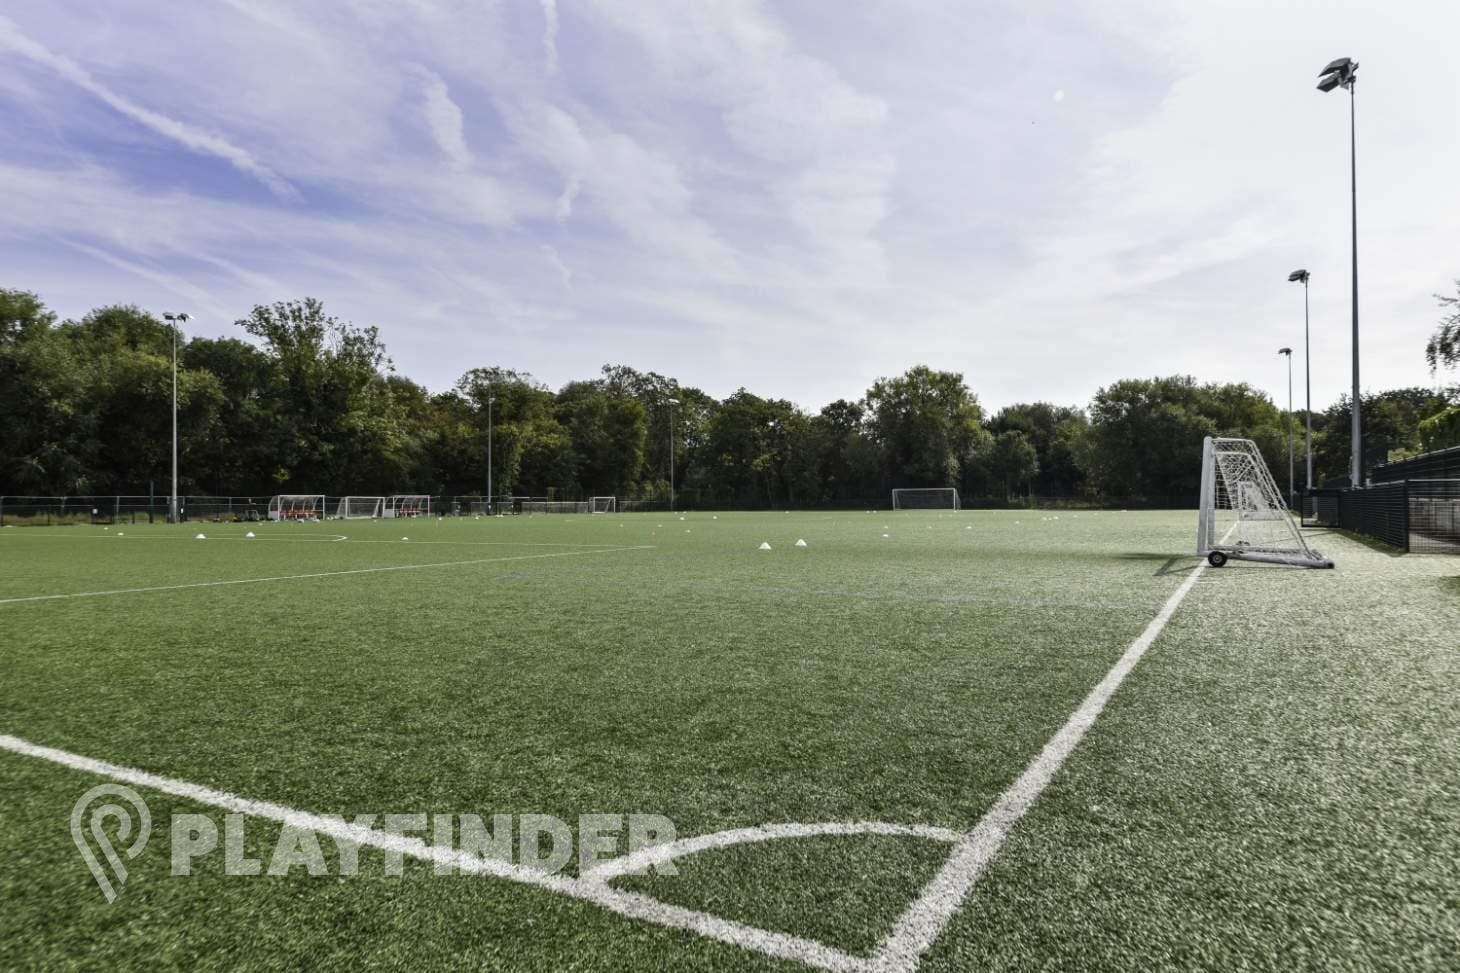 Tooting and Mitcham Community Sports Club 11 a side | 3G Astroturf football pitch